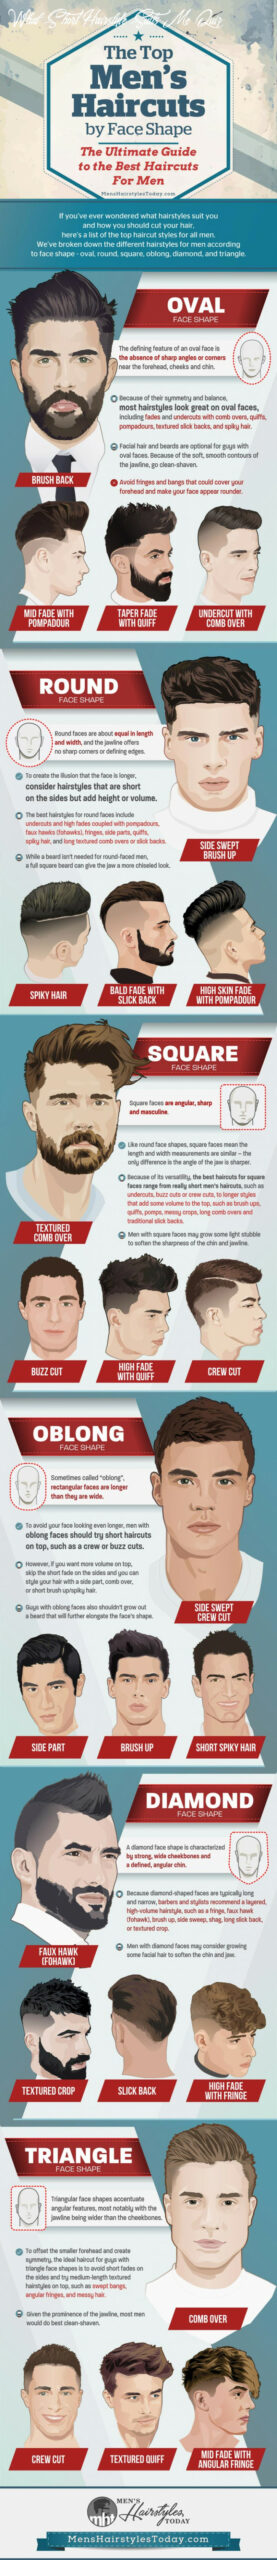 What haircut should i get? (12 guide) what short hairstyle suits me quiz